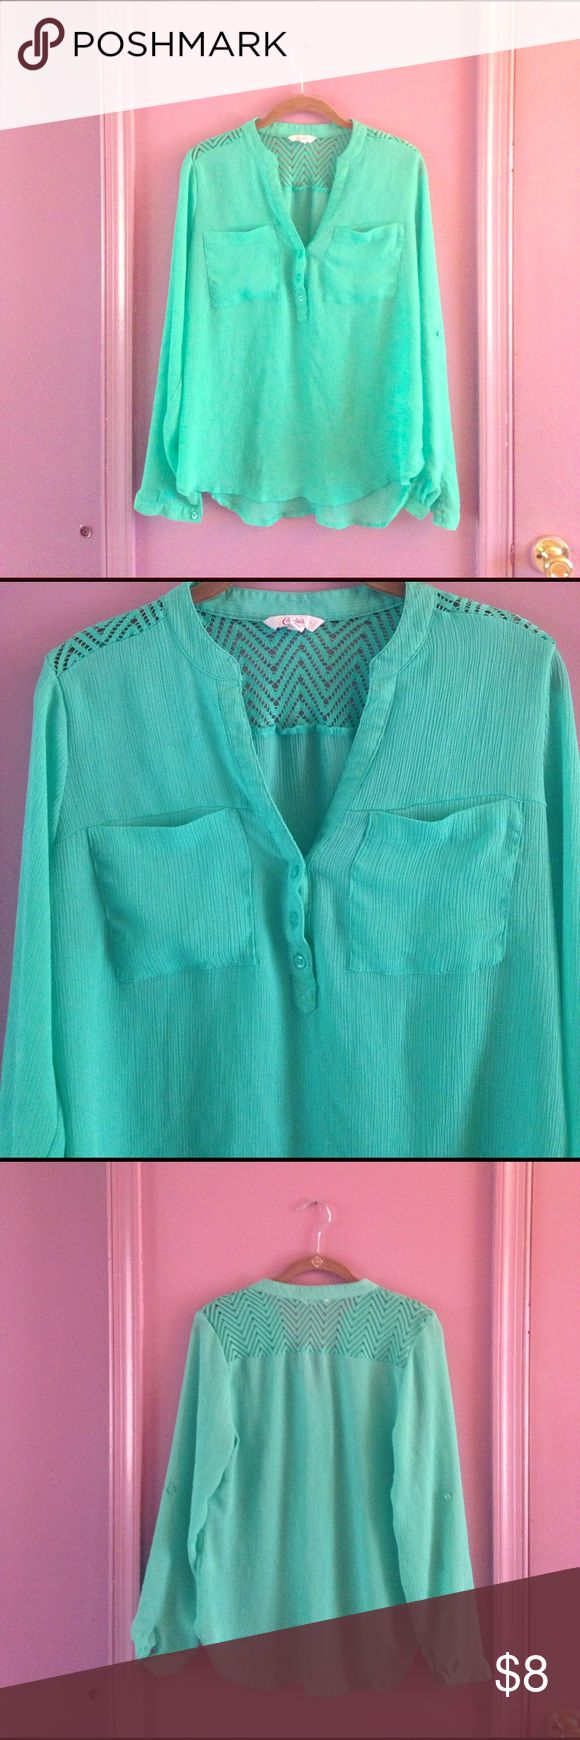 Adorable Mint Blouse! Excellent condition mint or seafoam top by Candie's. Has buttons on sleeves so you can roll them up or leave them down. Sheer fabric. Cute chevron crochet type detail on the back. So unique and awesome! Candie's Tops Blouses